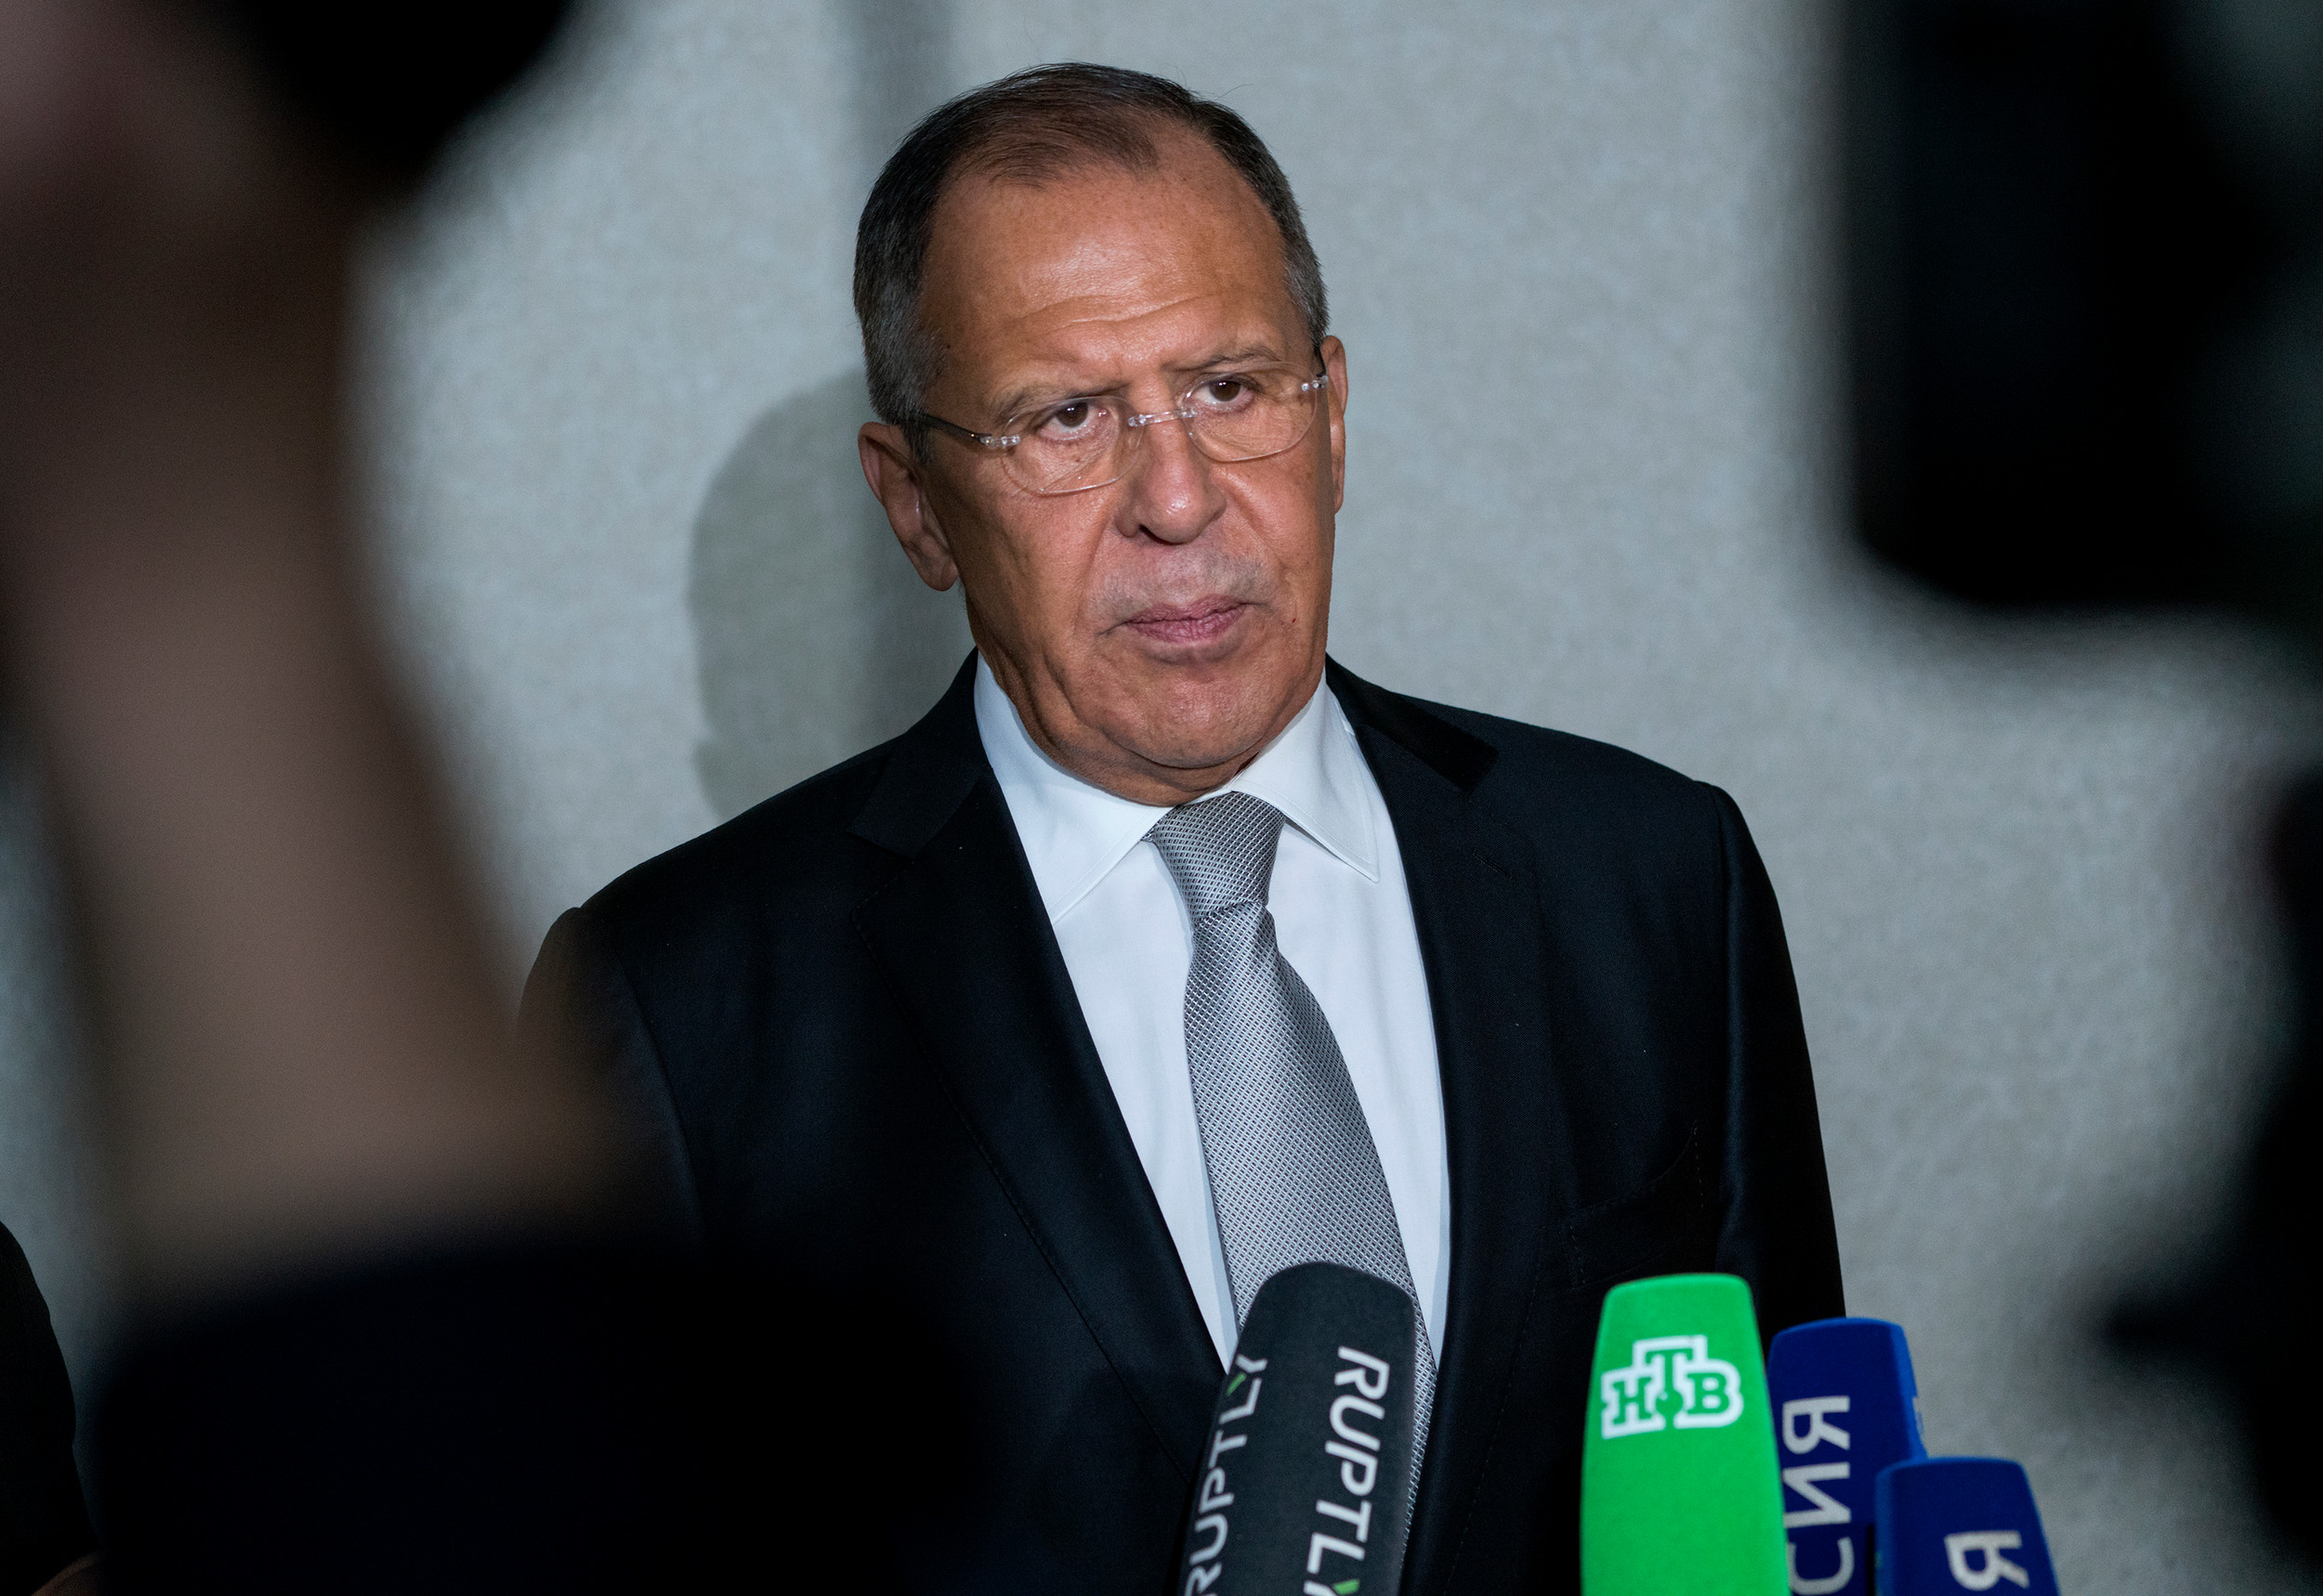 Lavrov Finds Opening In Trump Speech